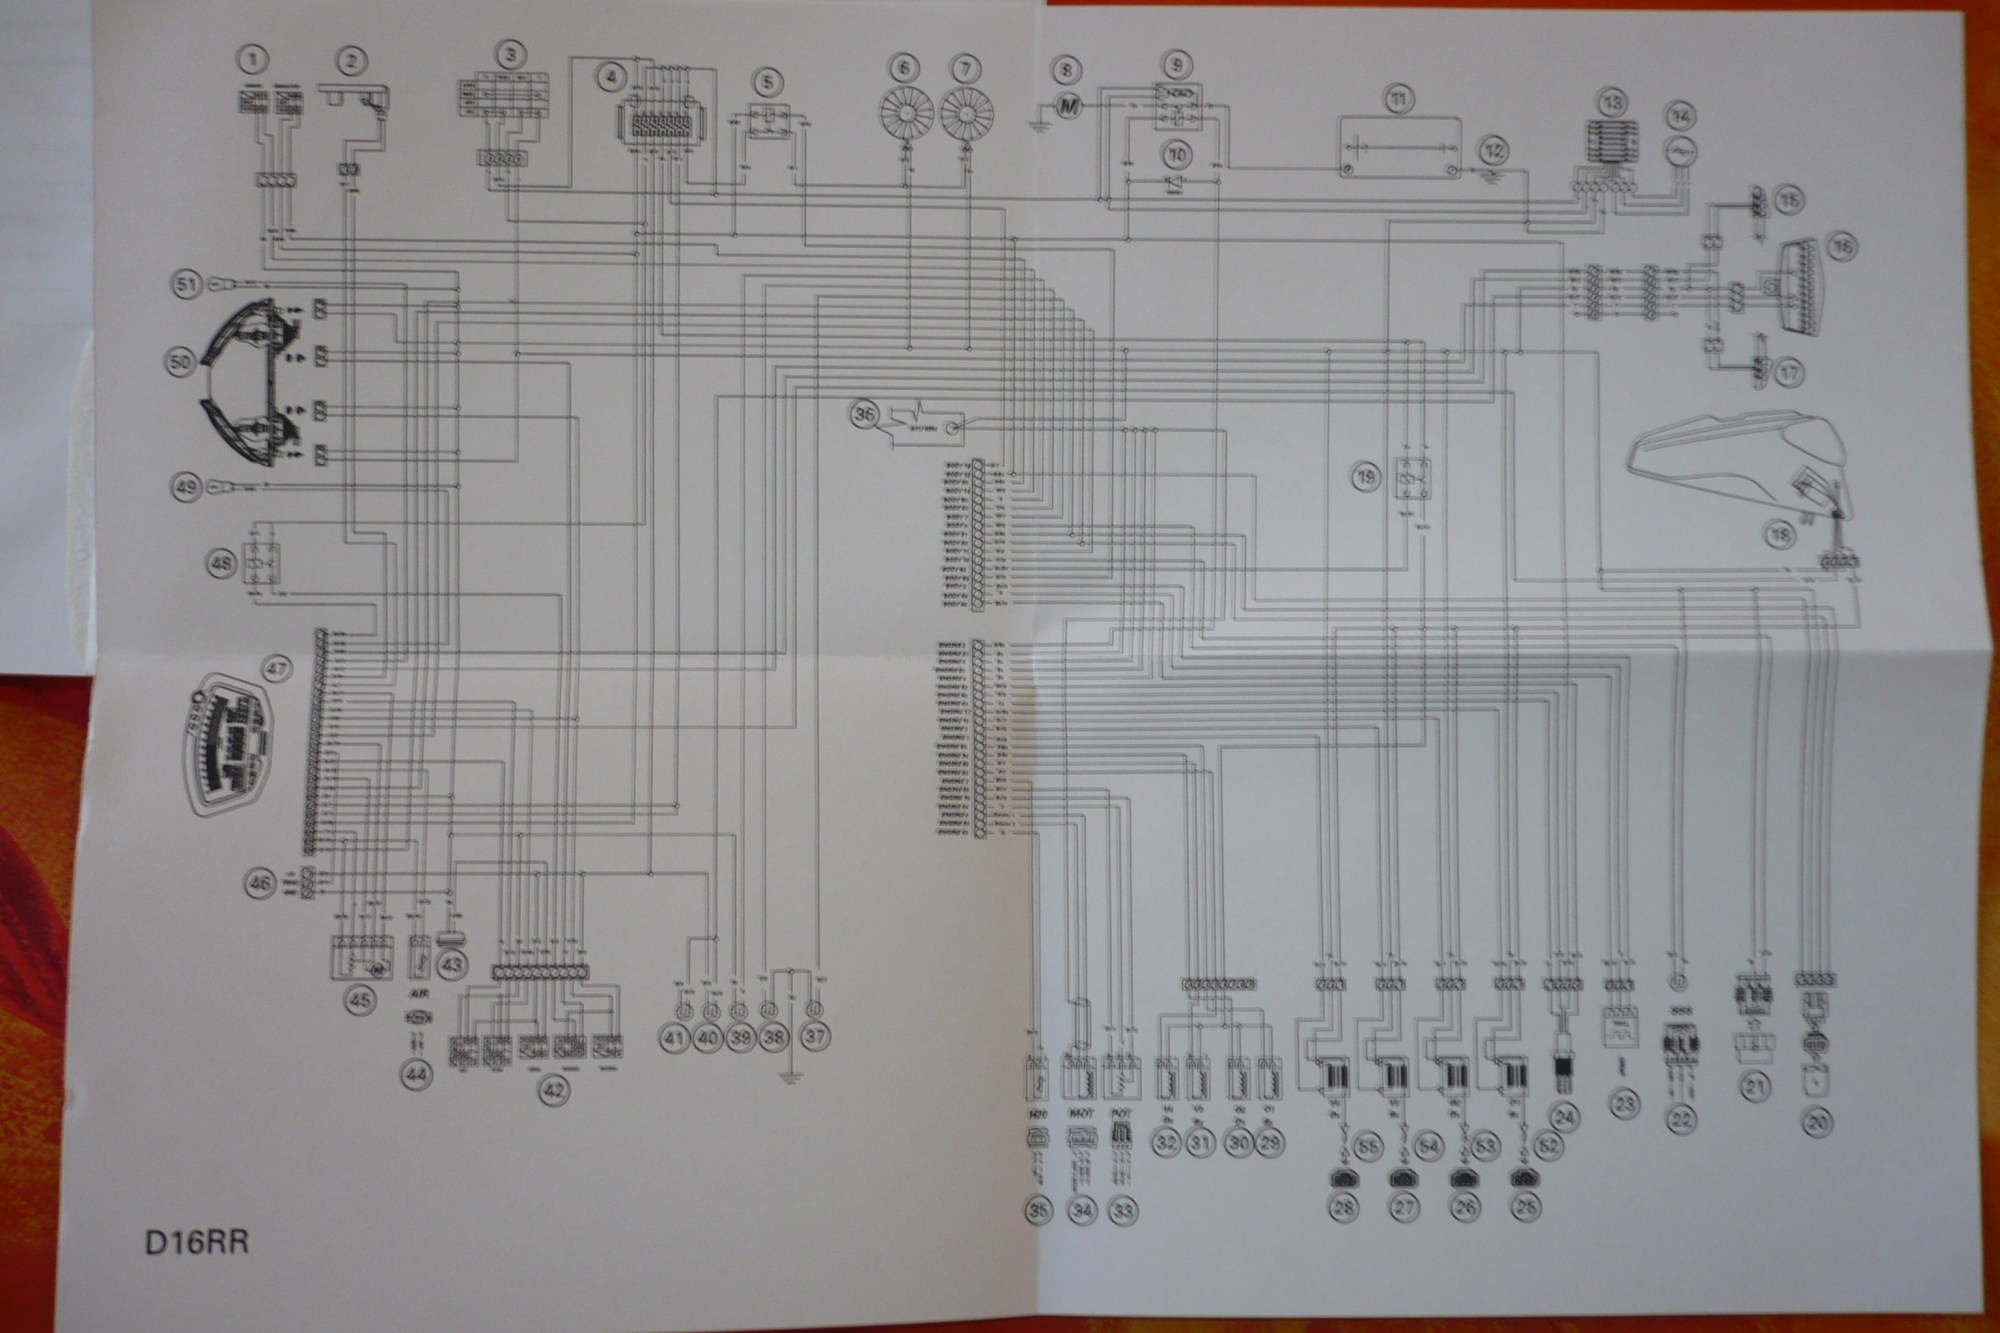 hight resolution of wiring diagram ducati org forum the home for ducati owners and ducati electrical wiring diagrams